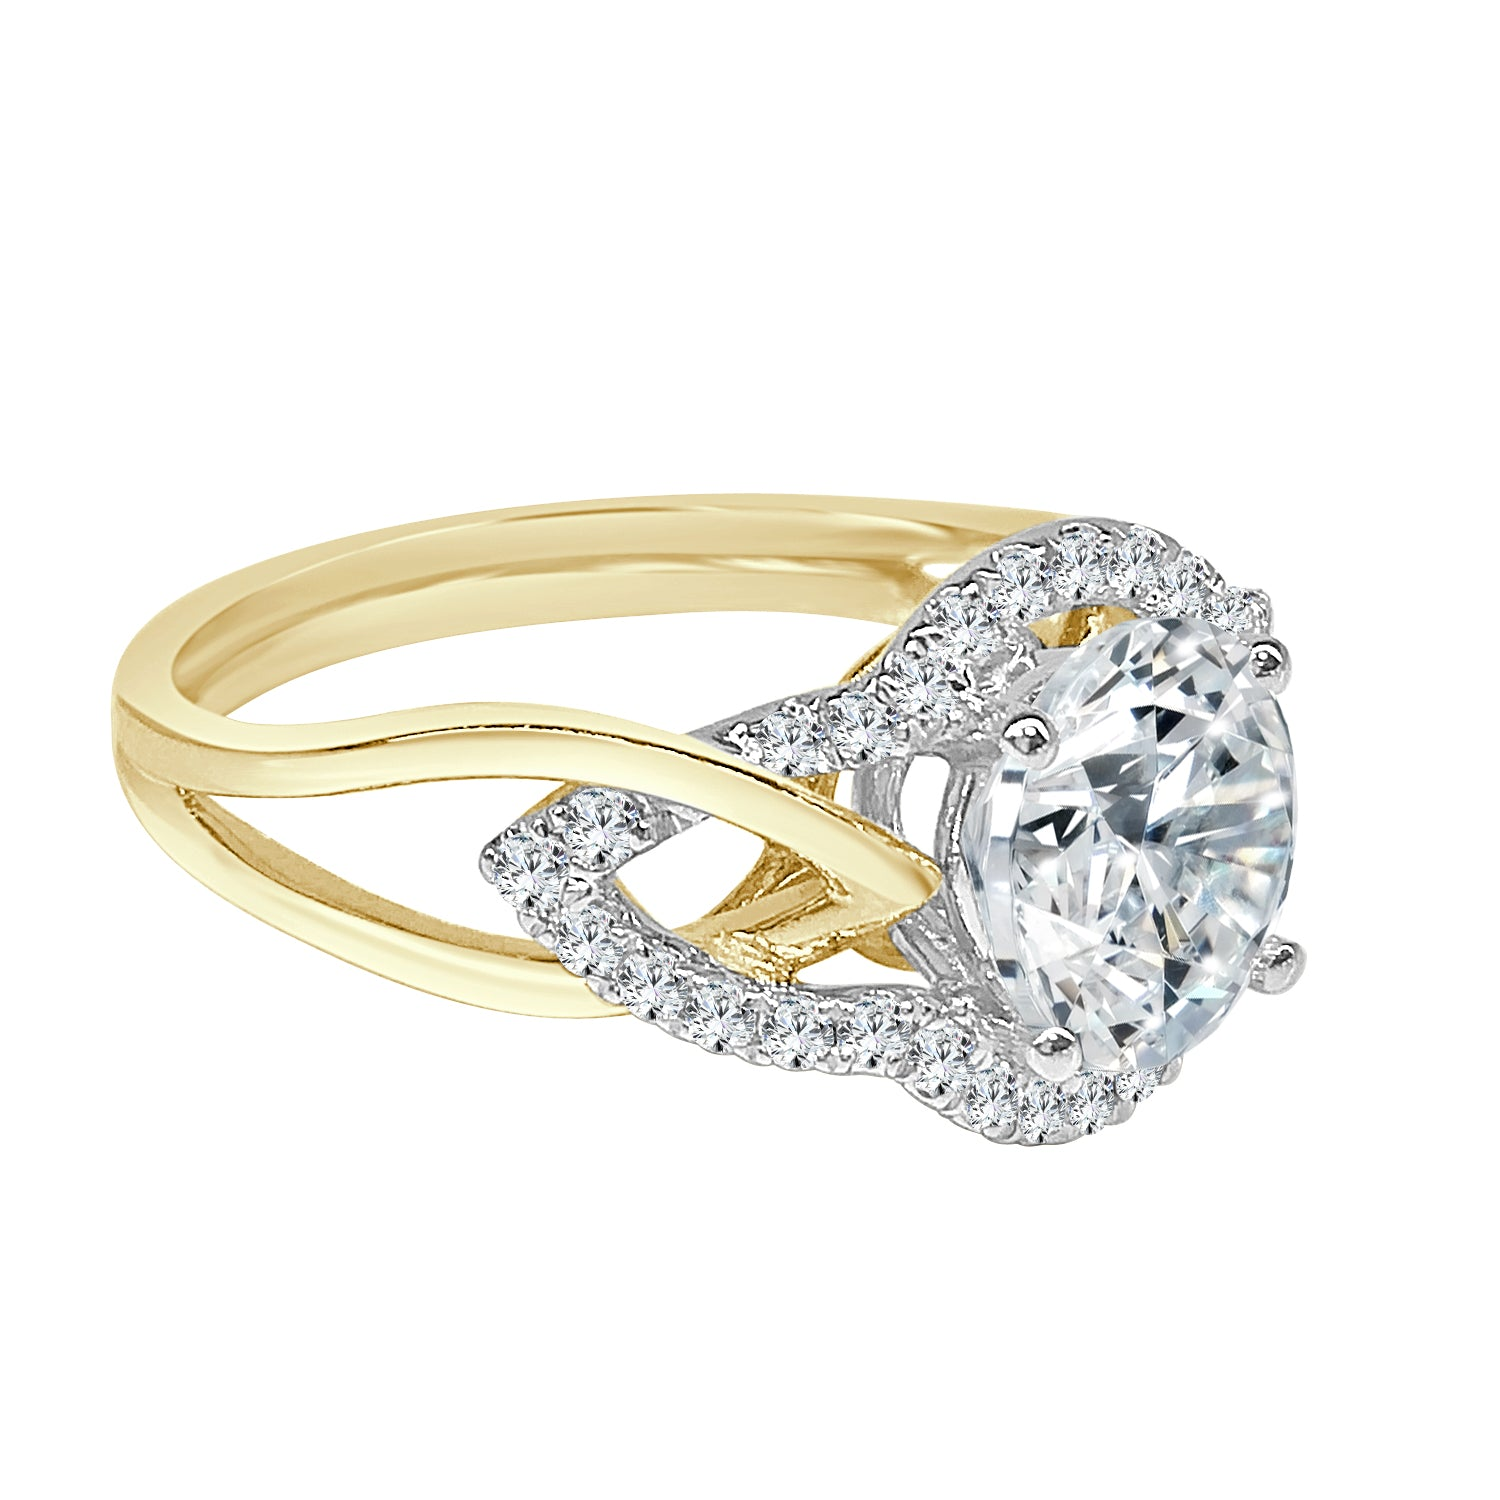 Simon G. Two-tone Twisted Engagement Ring Mounting